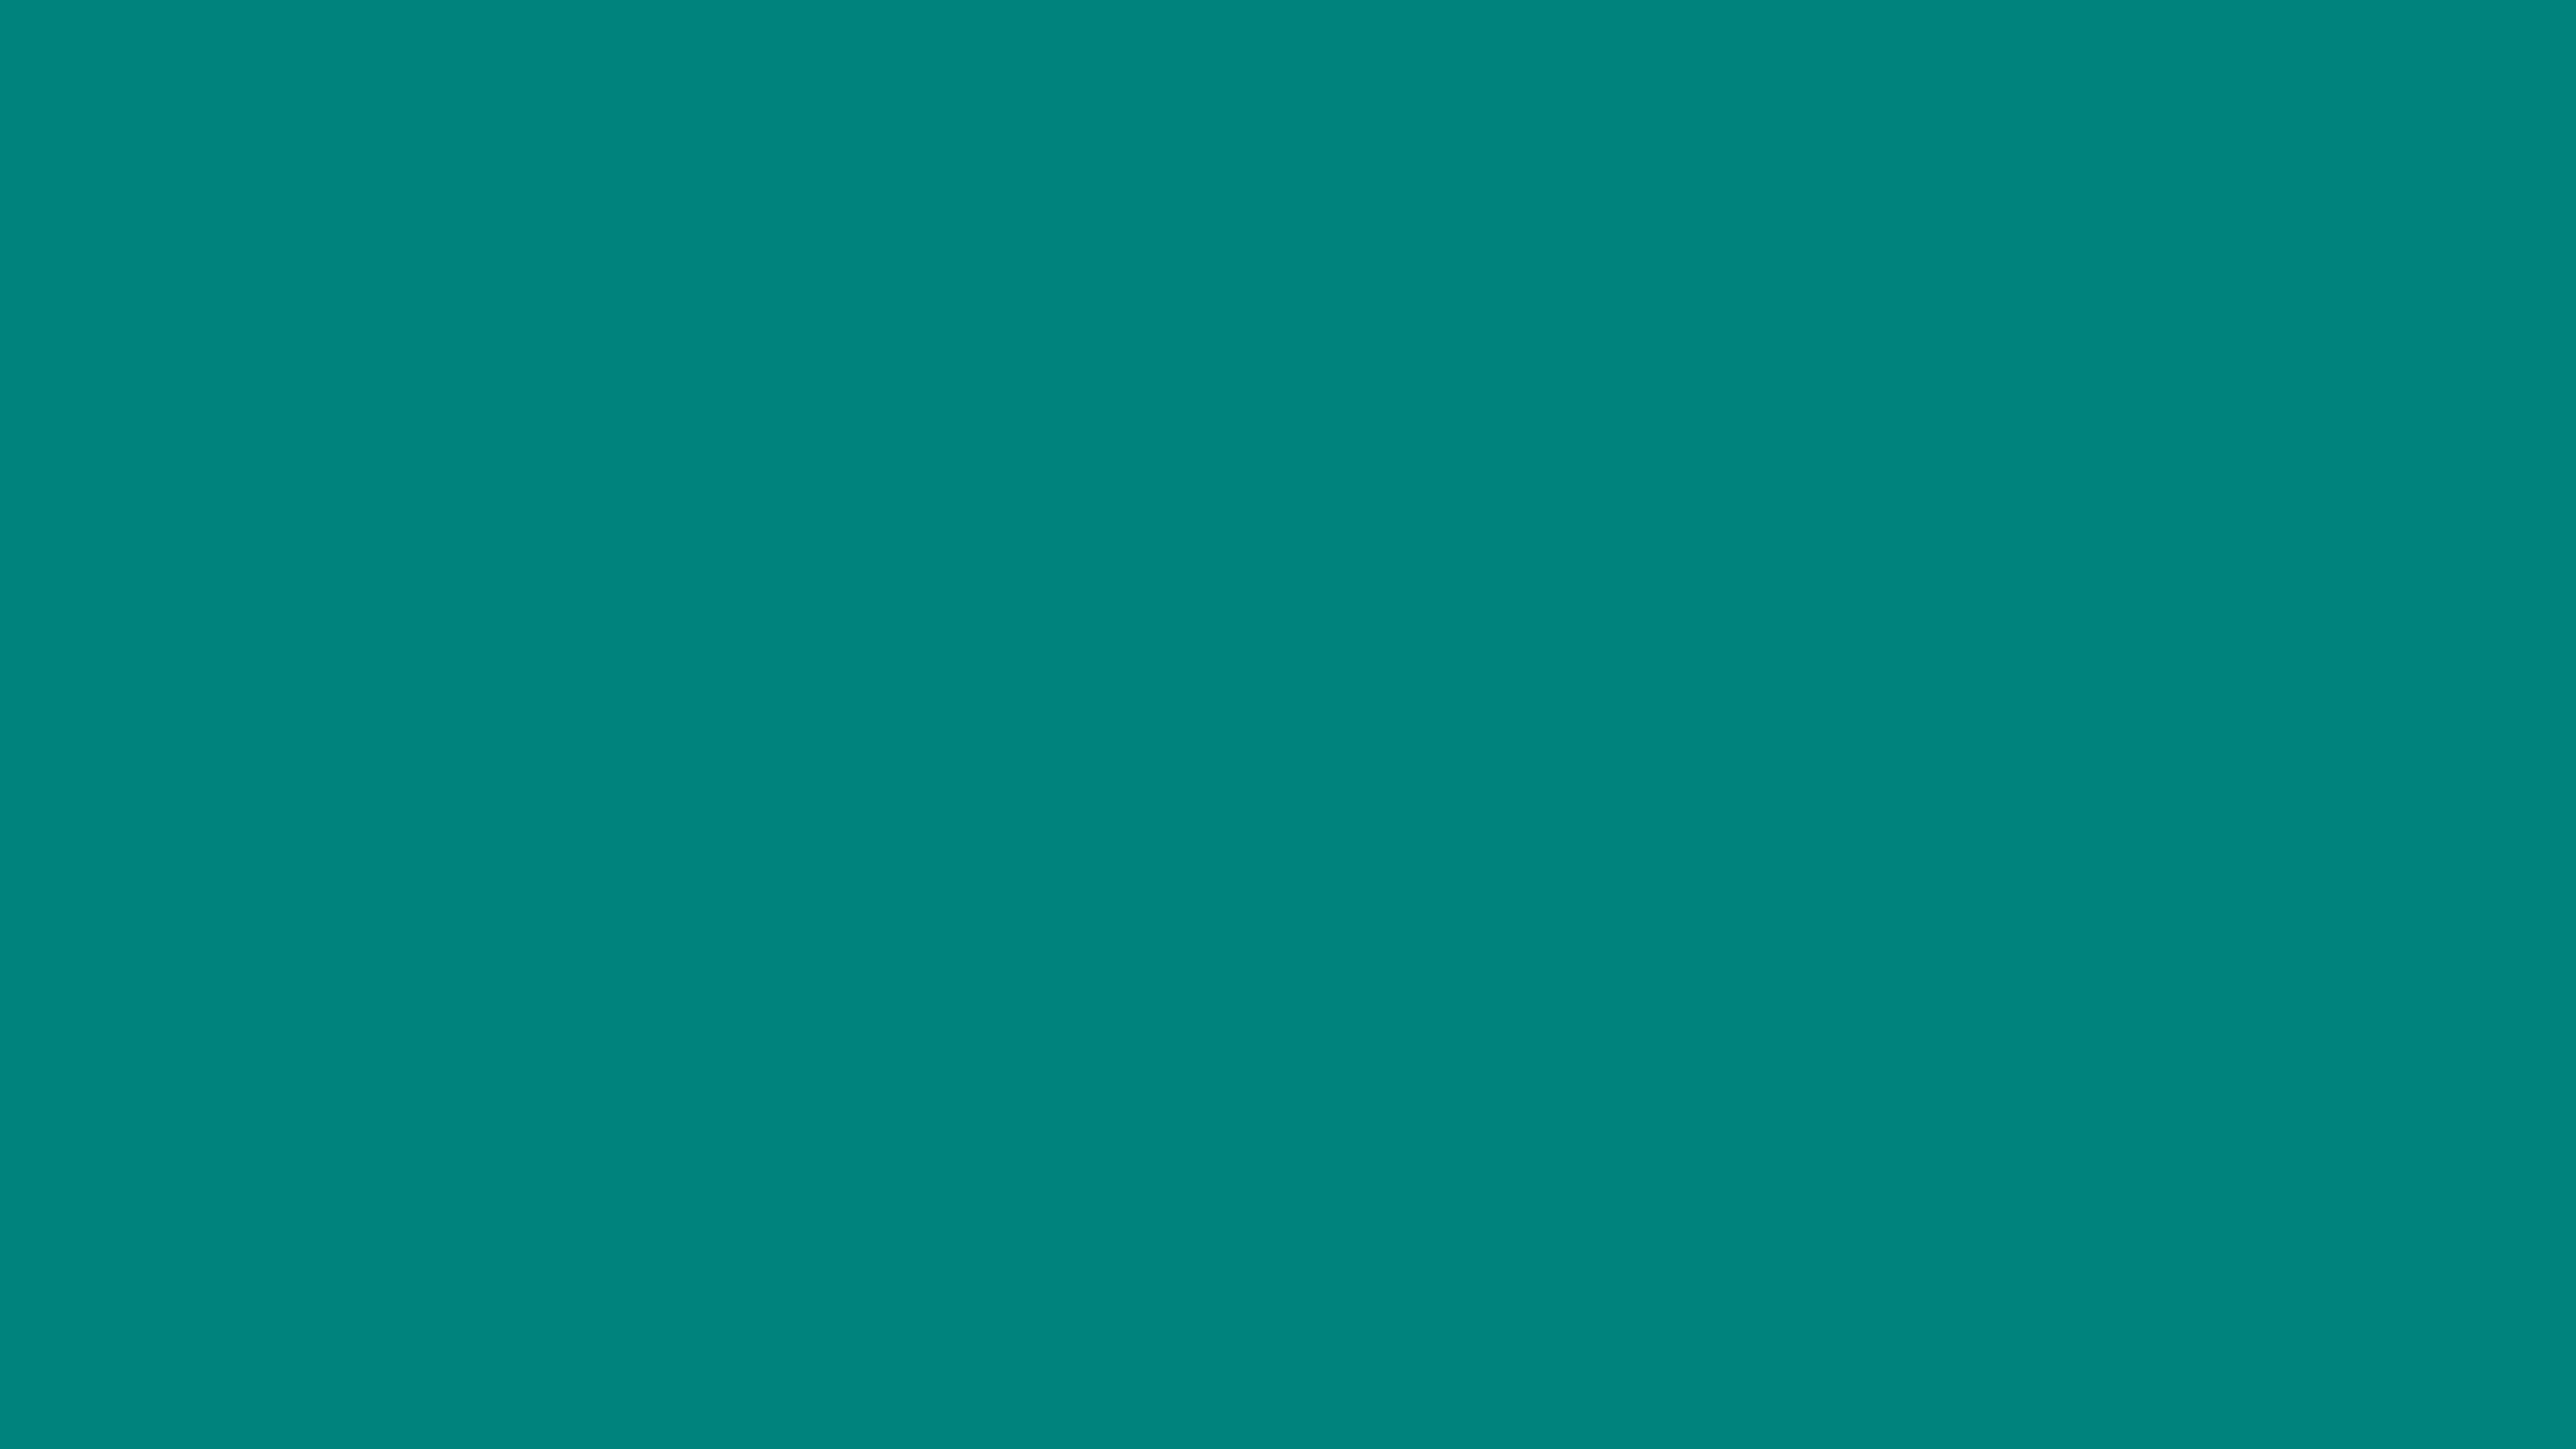 4096x2304 Teal Green Solid Color Background